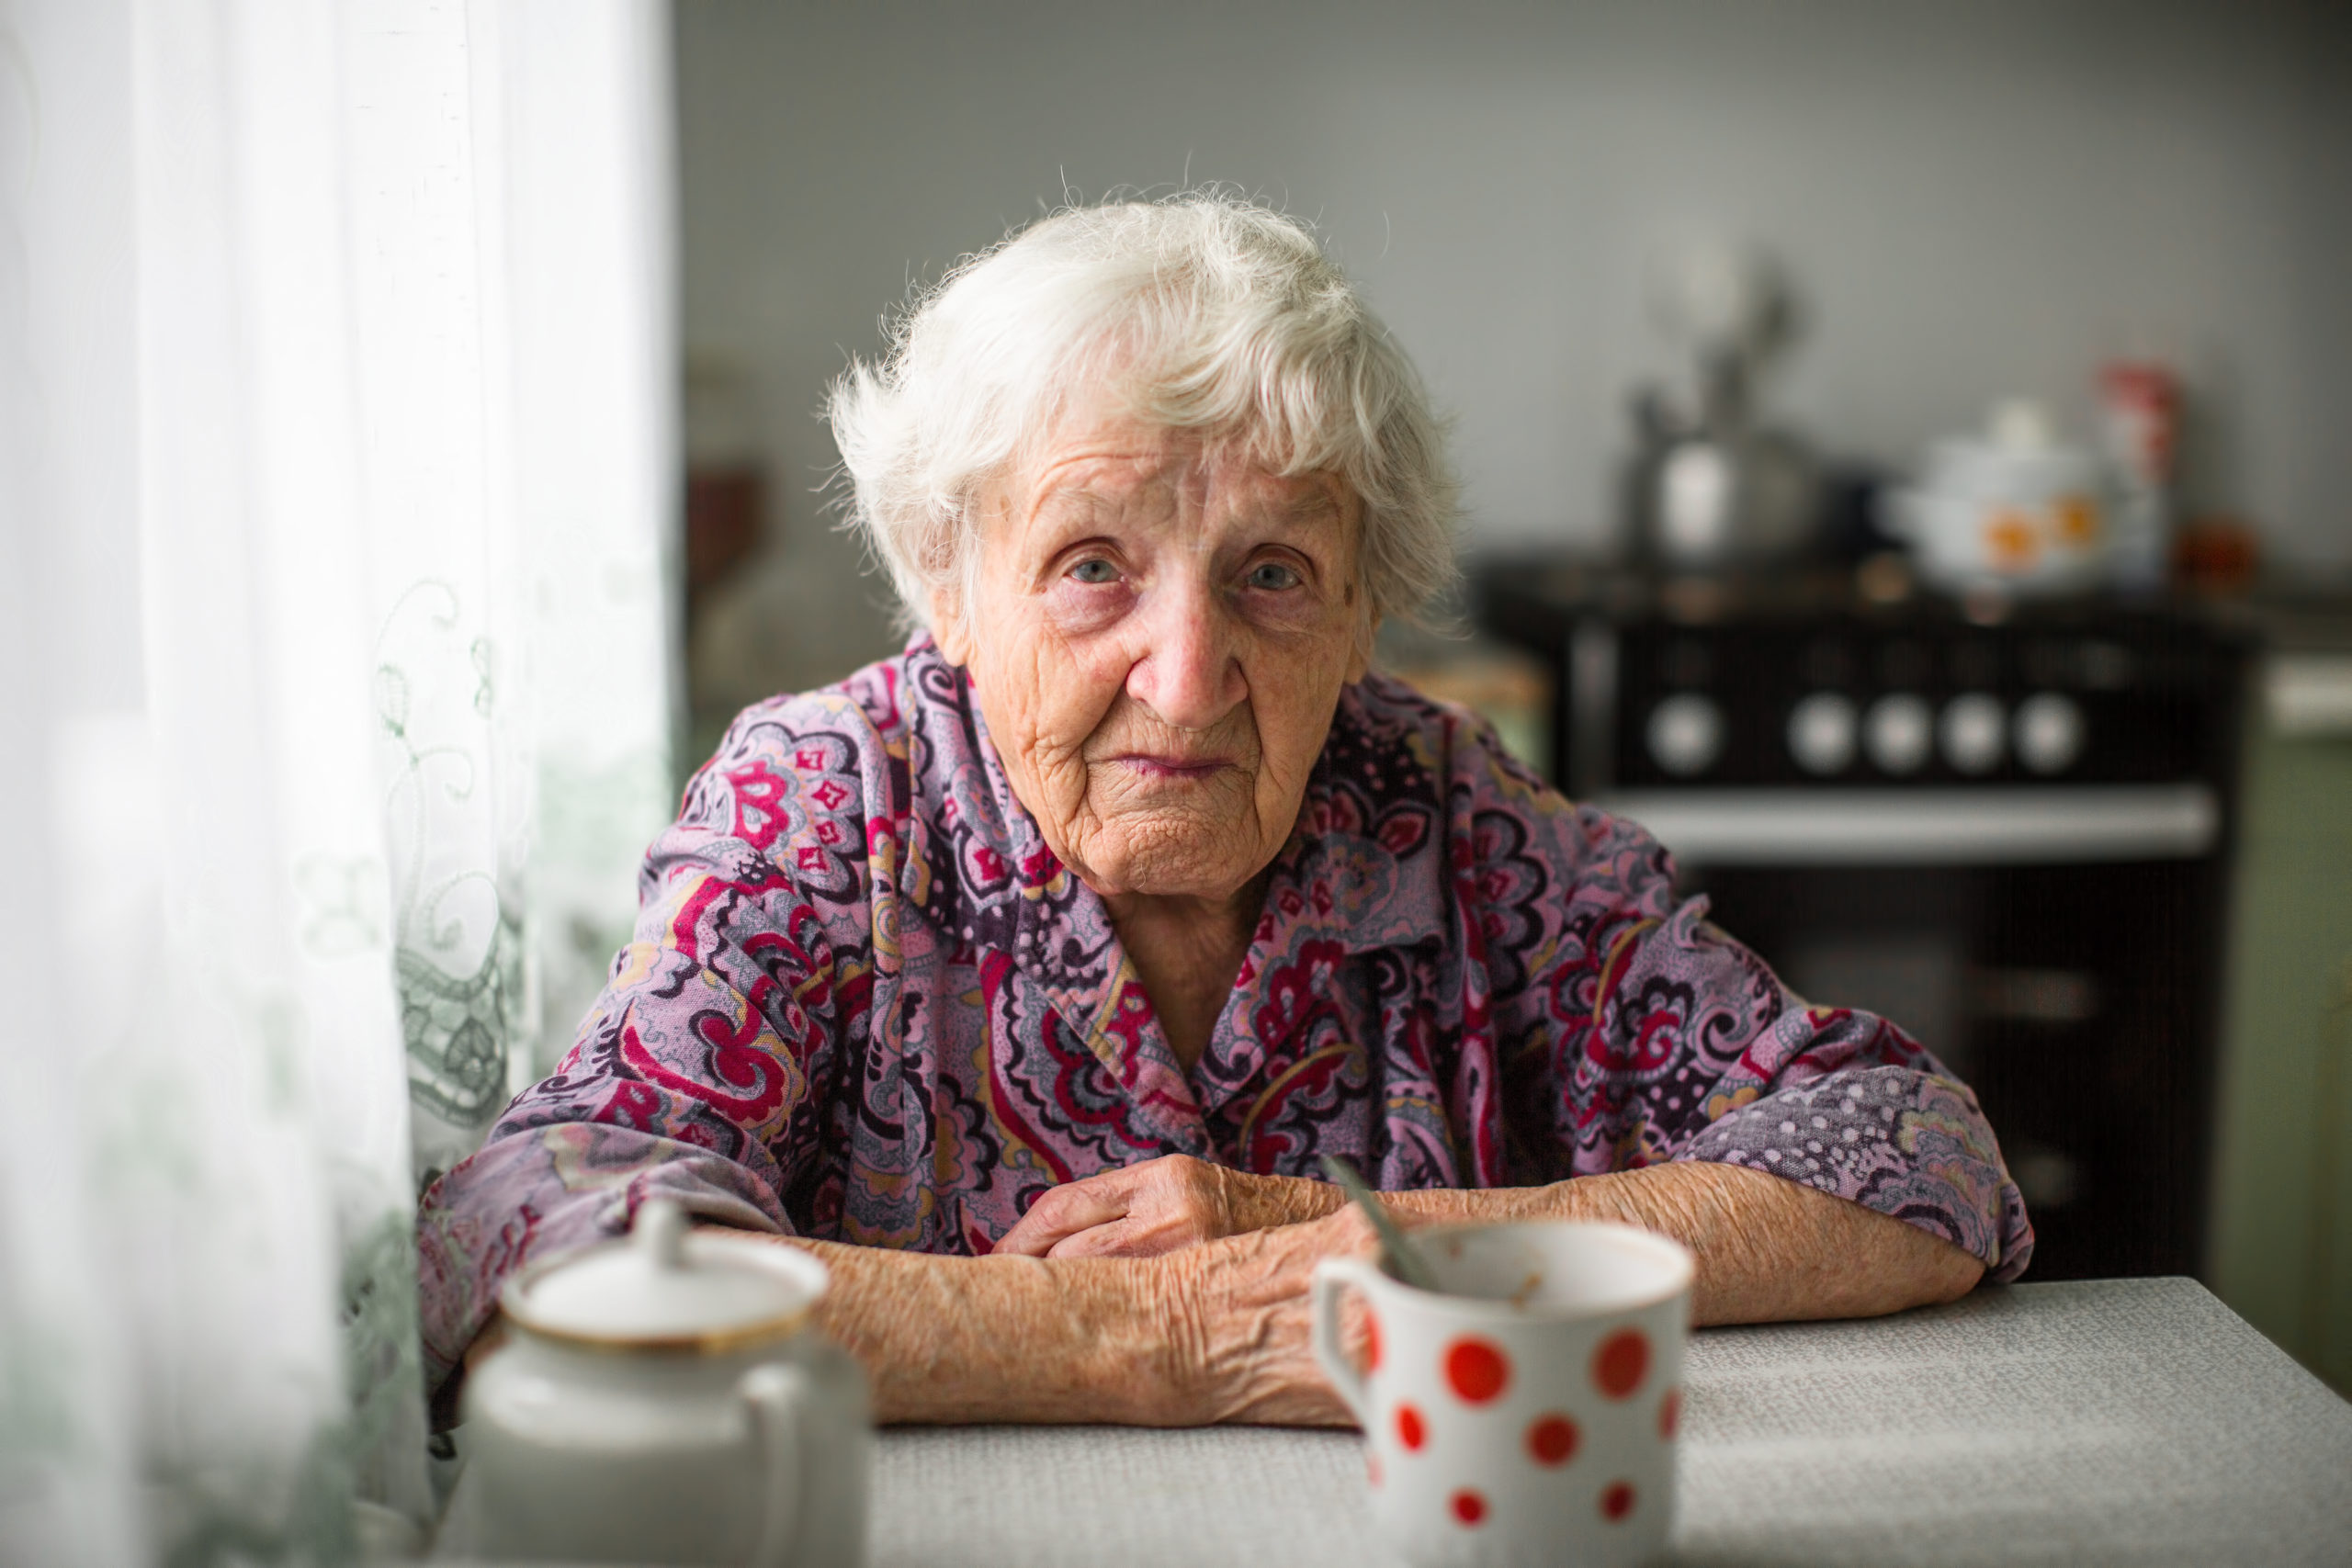 An elderly russian woman sitting at the kitchen table.